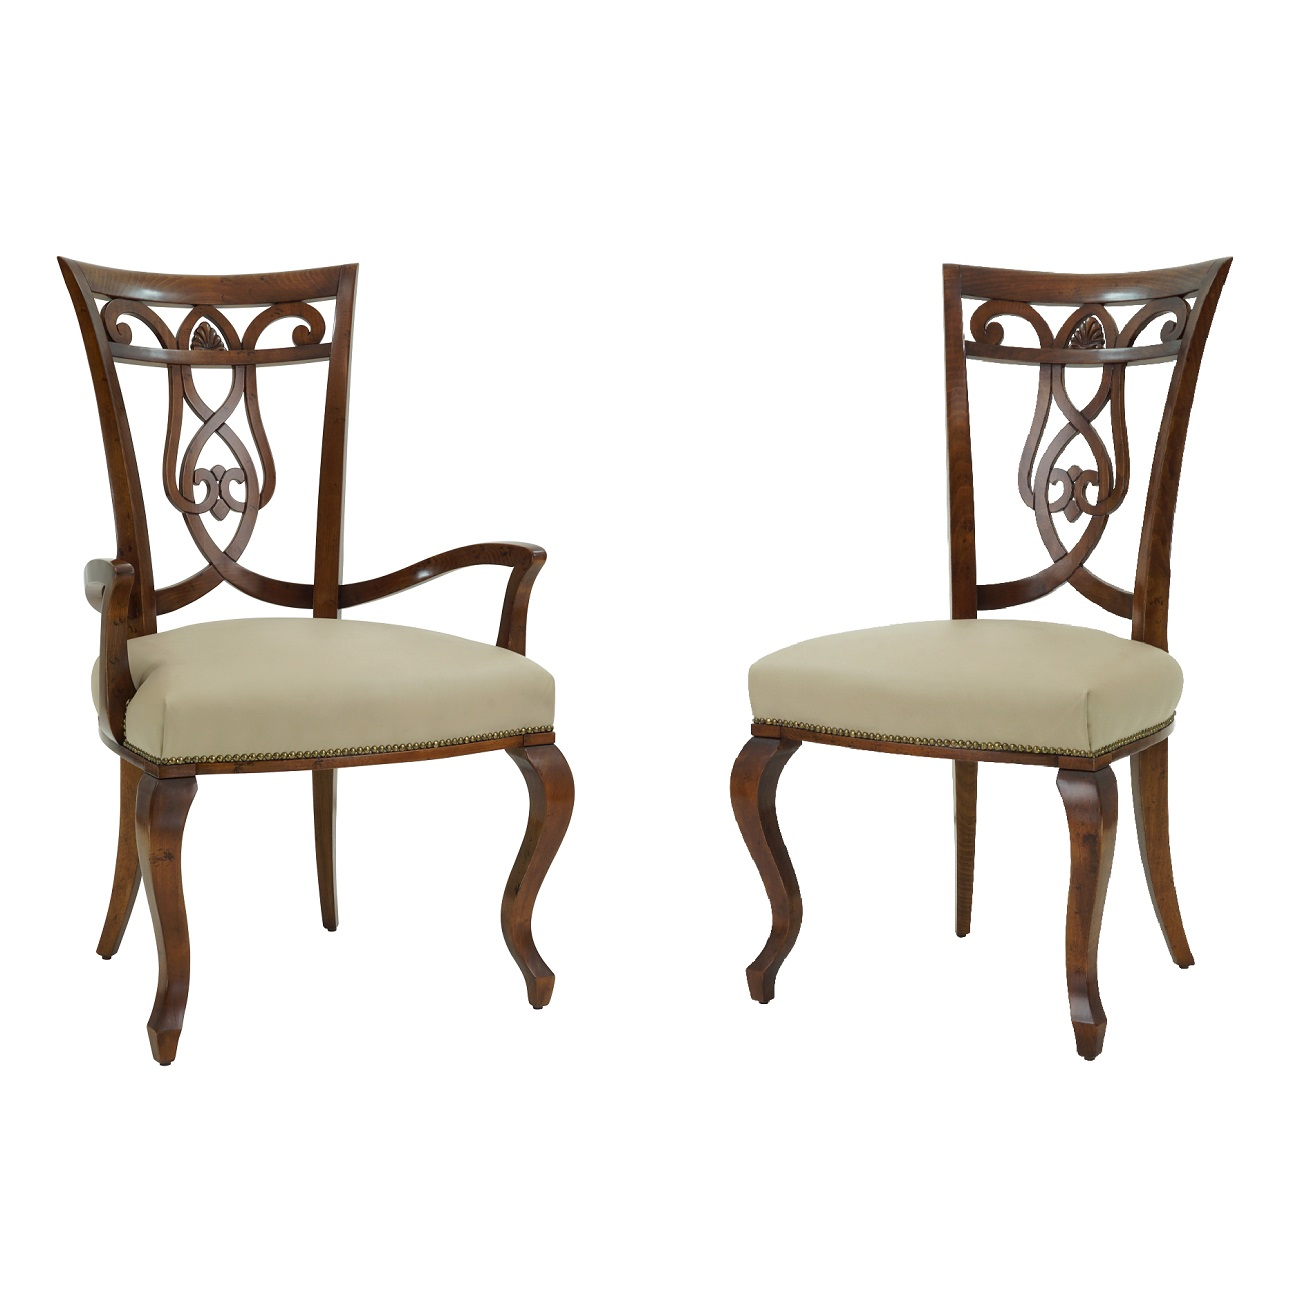 Accentuation Contemporary Chairs For Sale